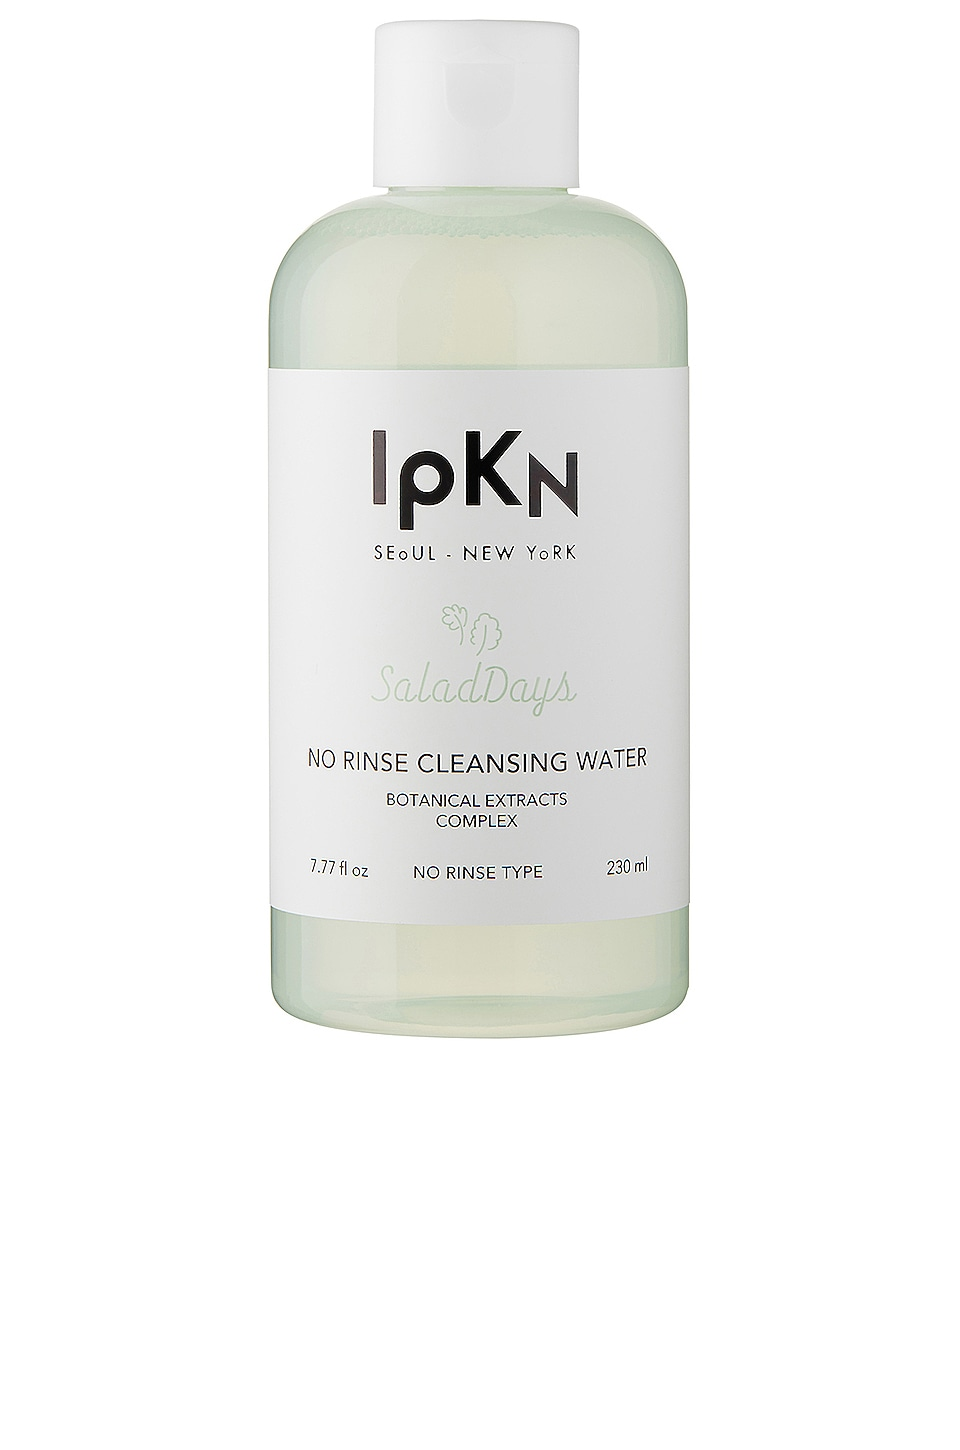 IPKN SALAD DAYS NO RINSE CLEANSING WATER